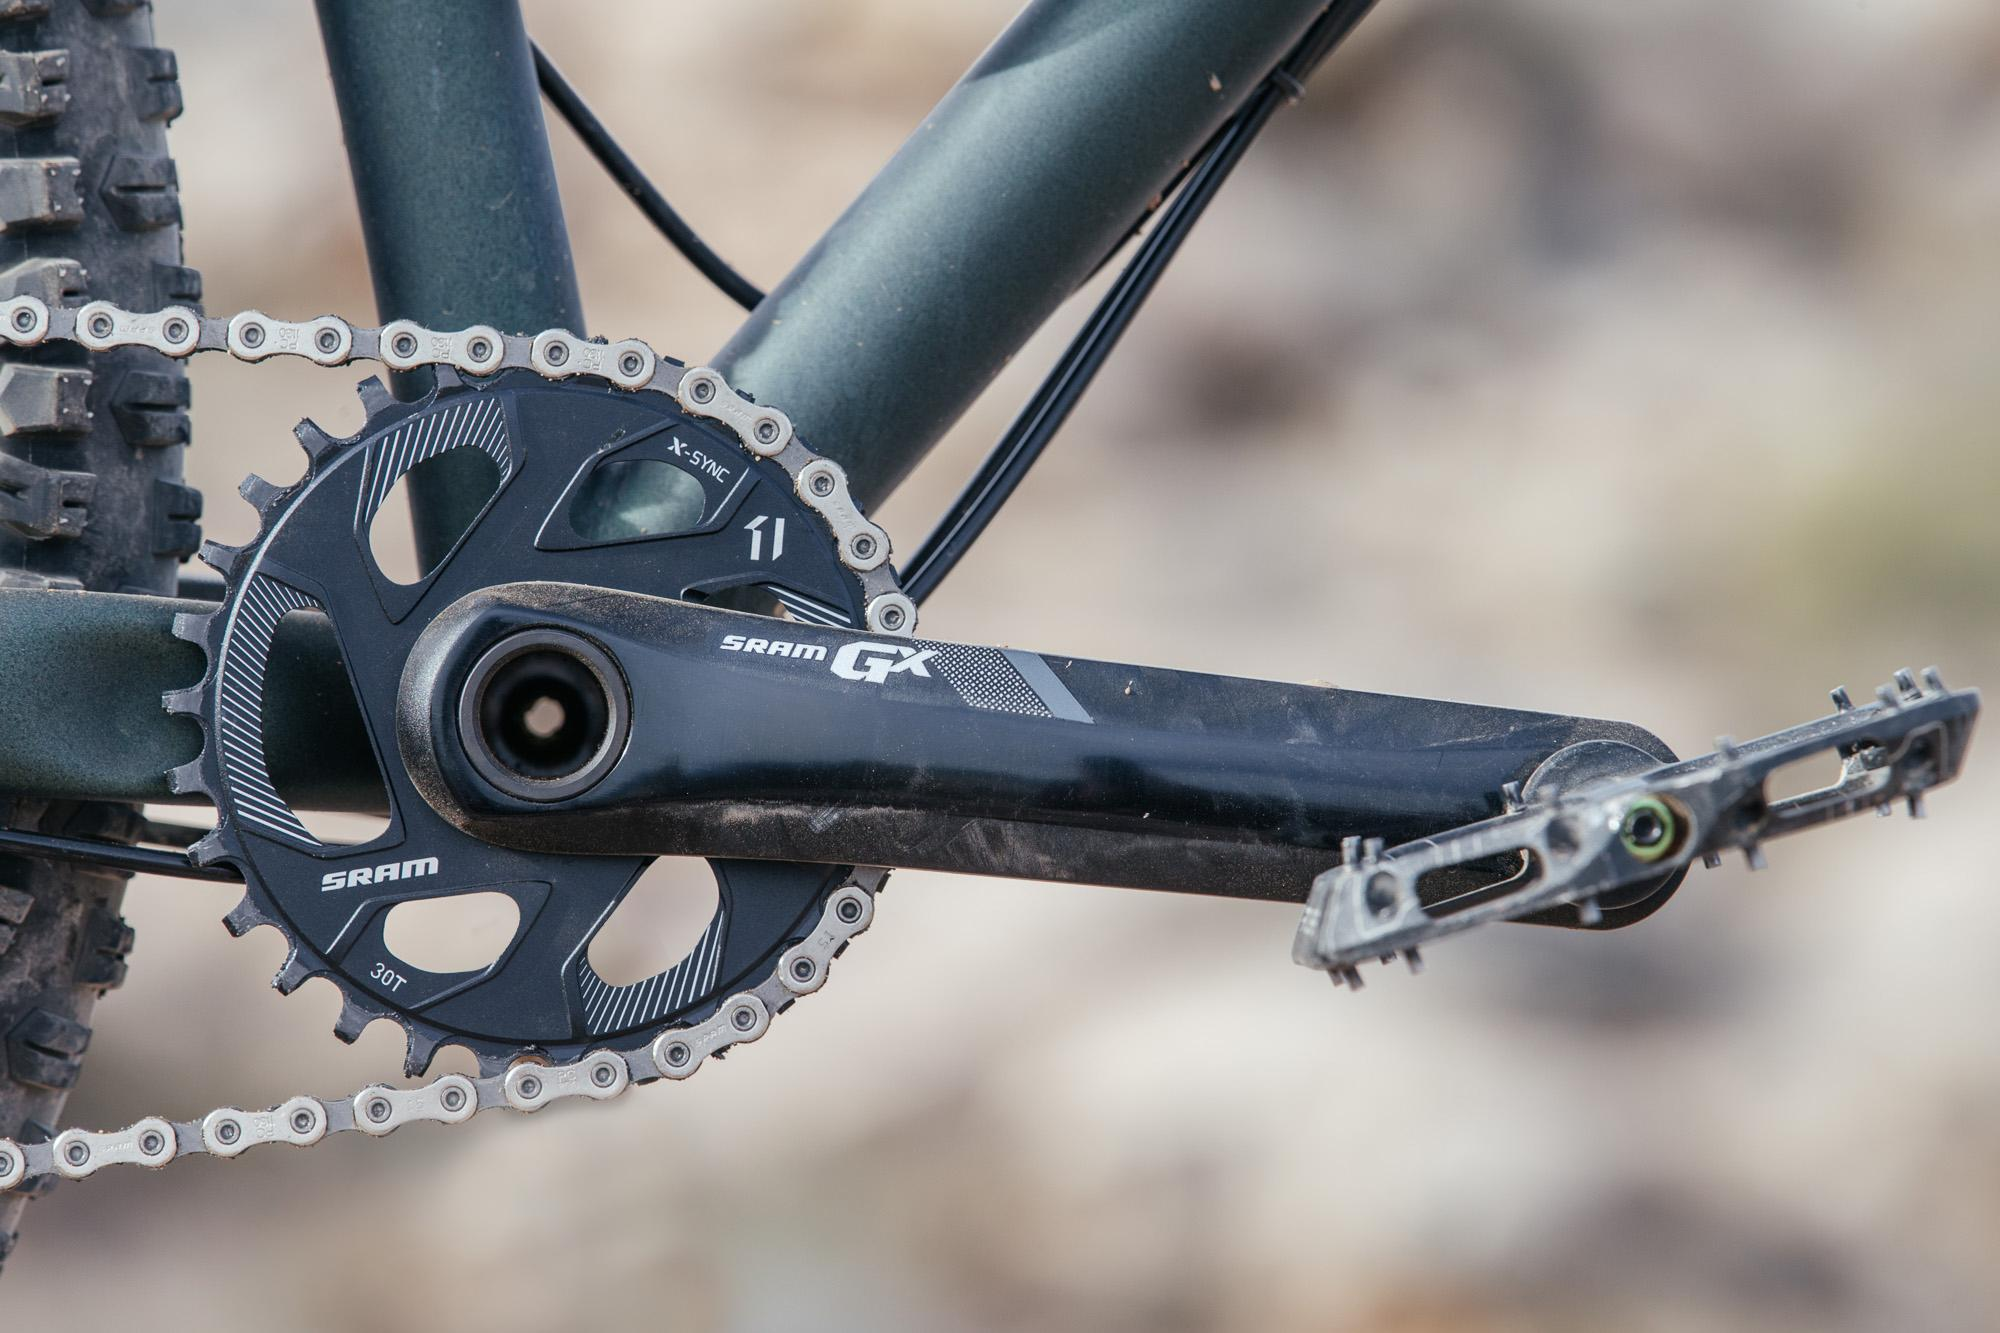 My Retrotec is Rollin' Again with SRAM GX